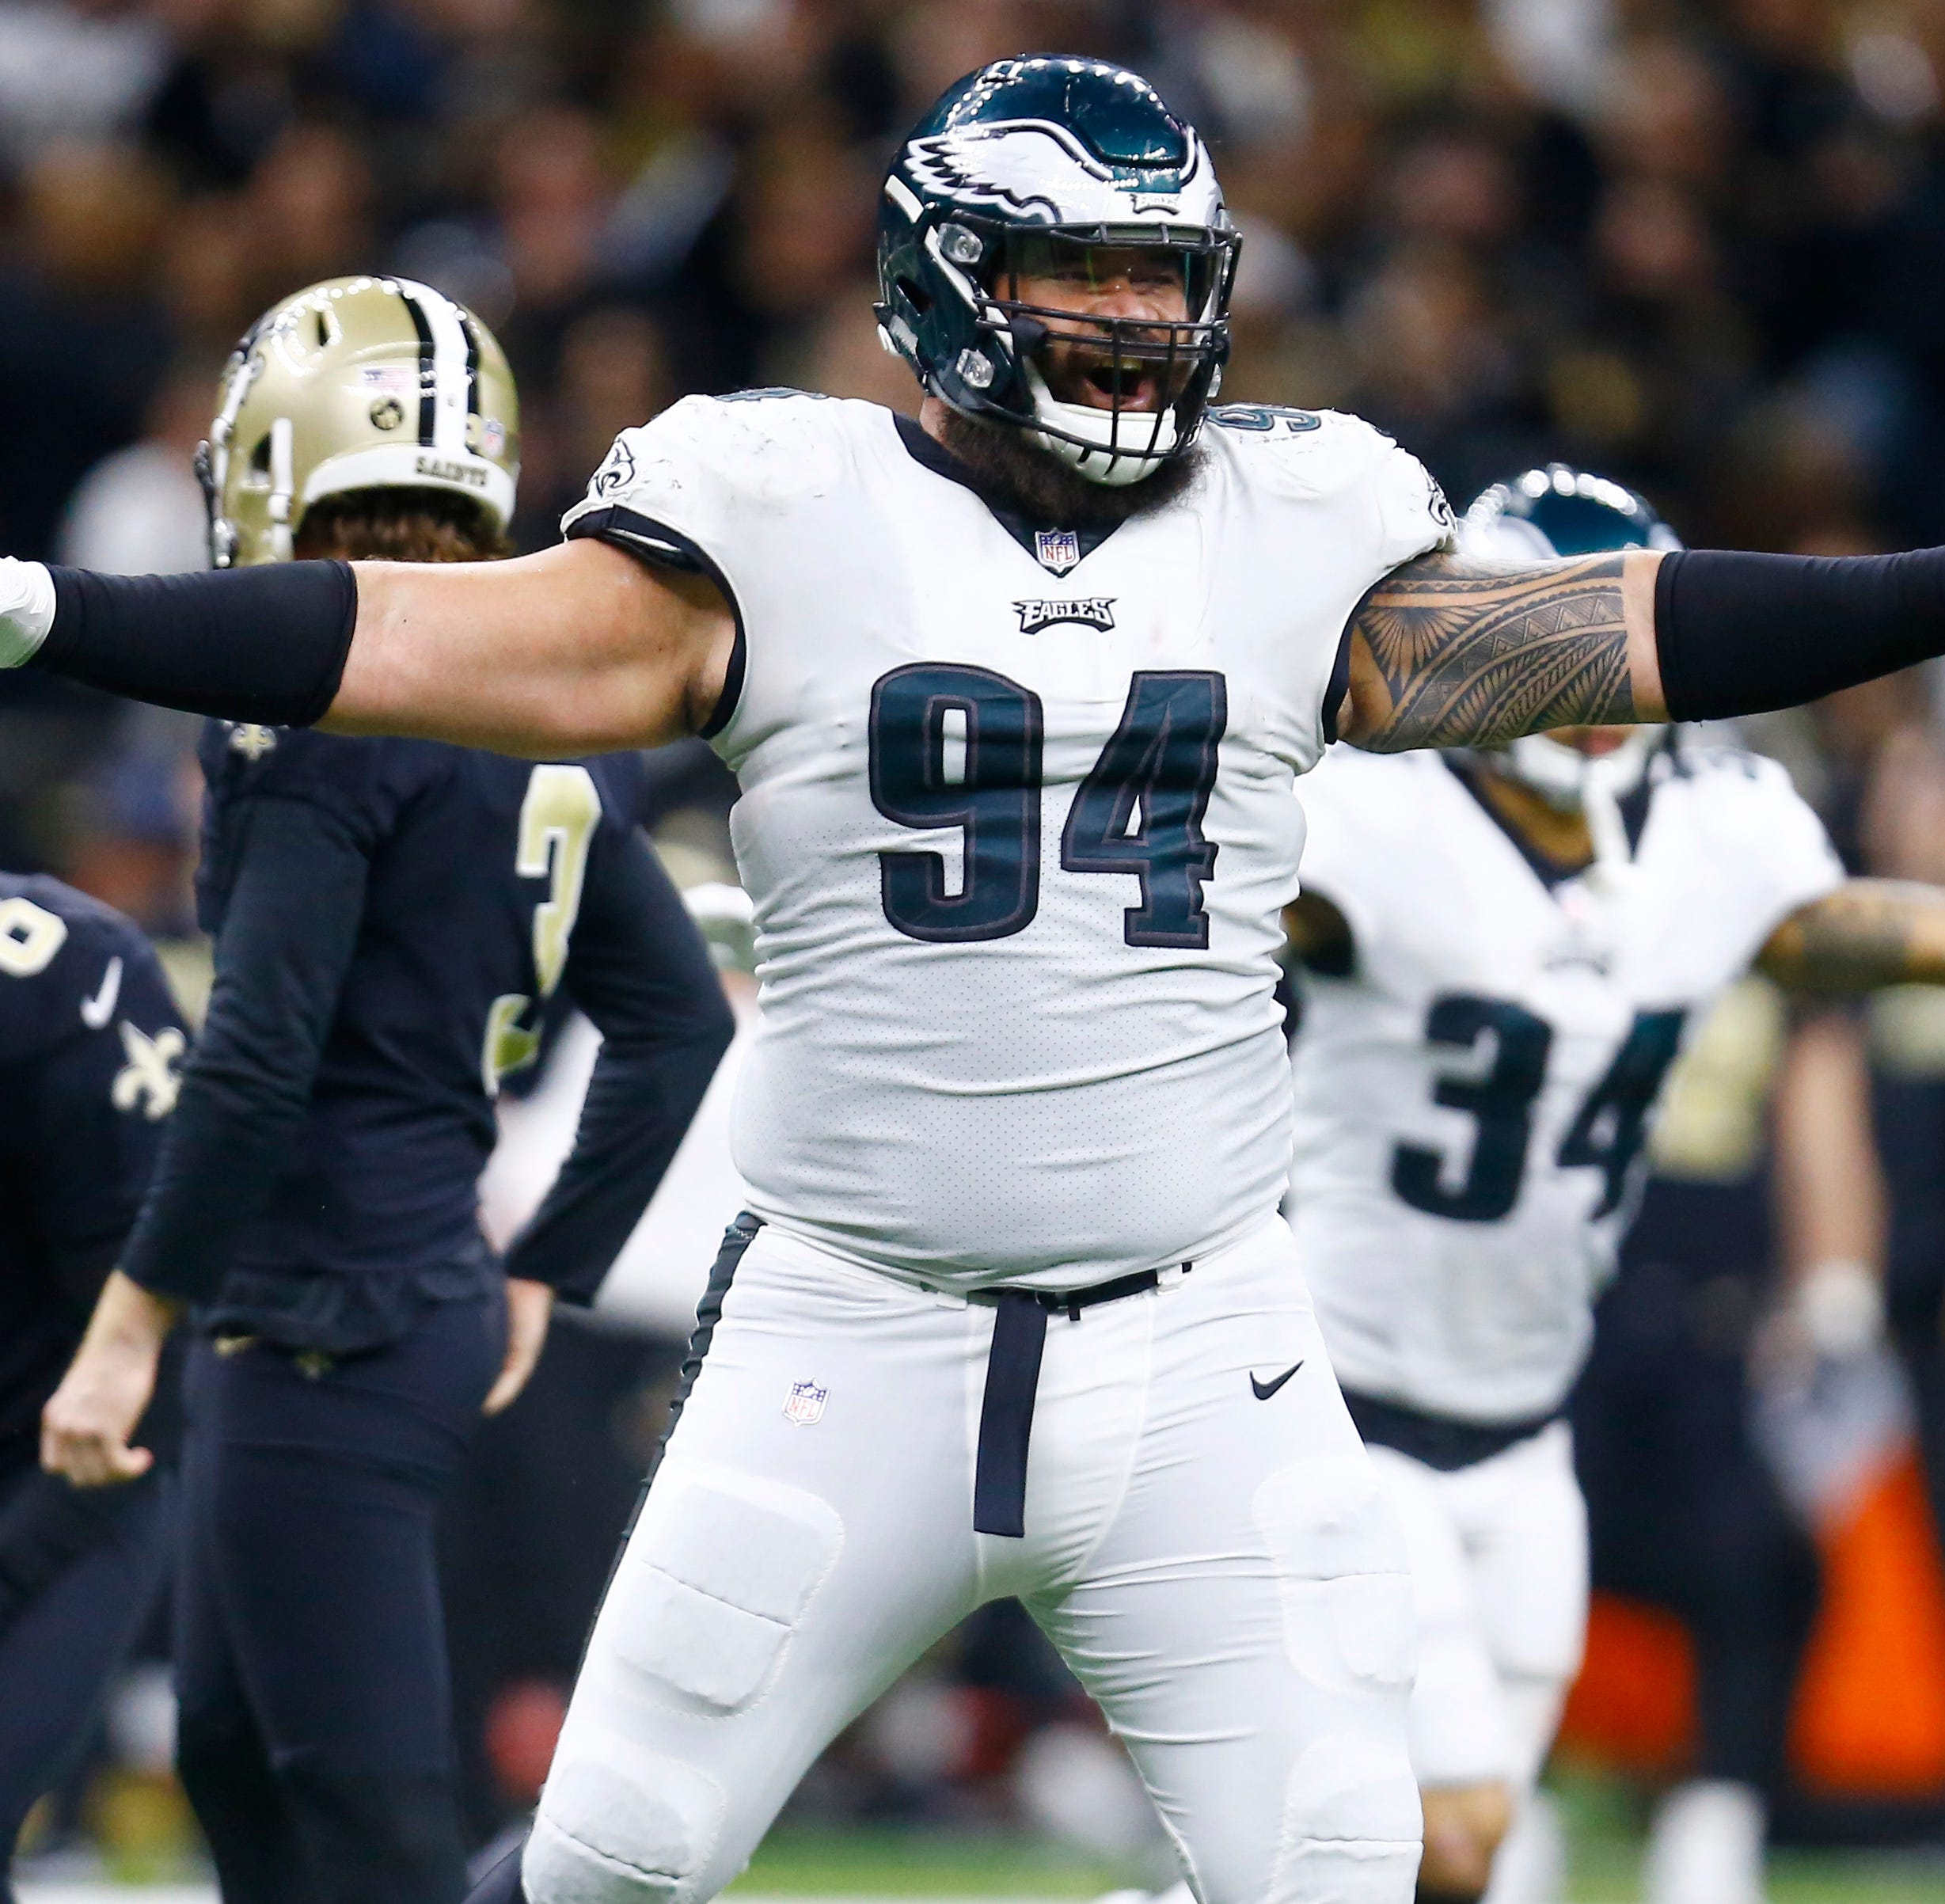 From high atop Kilimanjaro, Eagles' Haloti Ngata retires